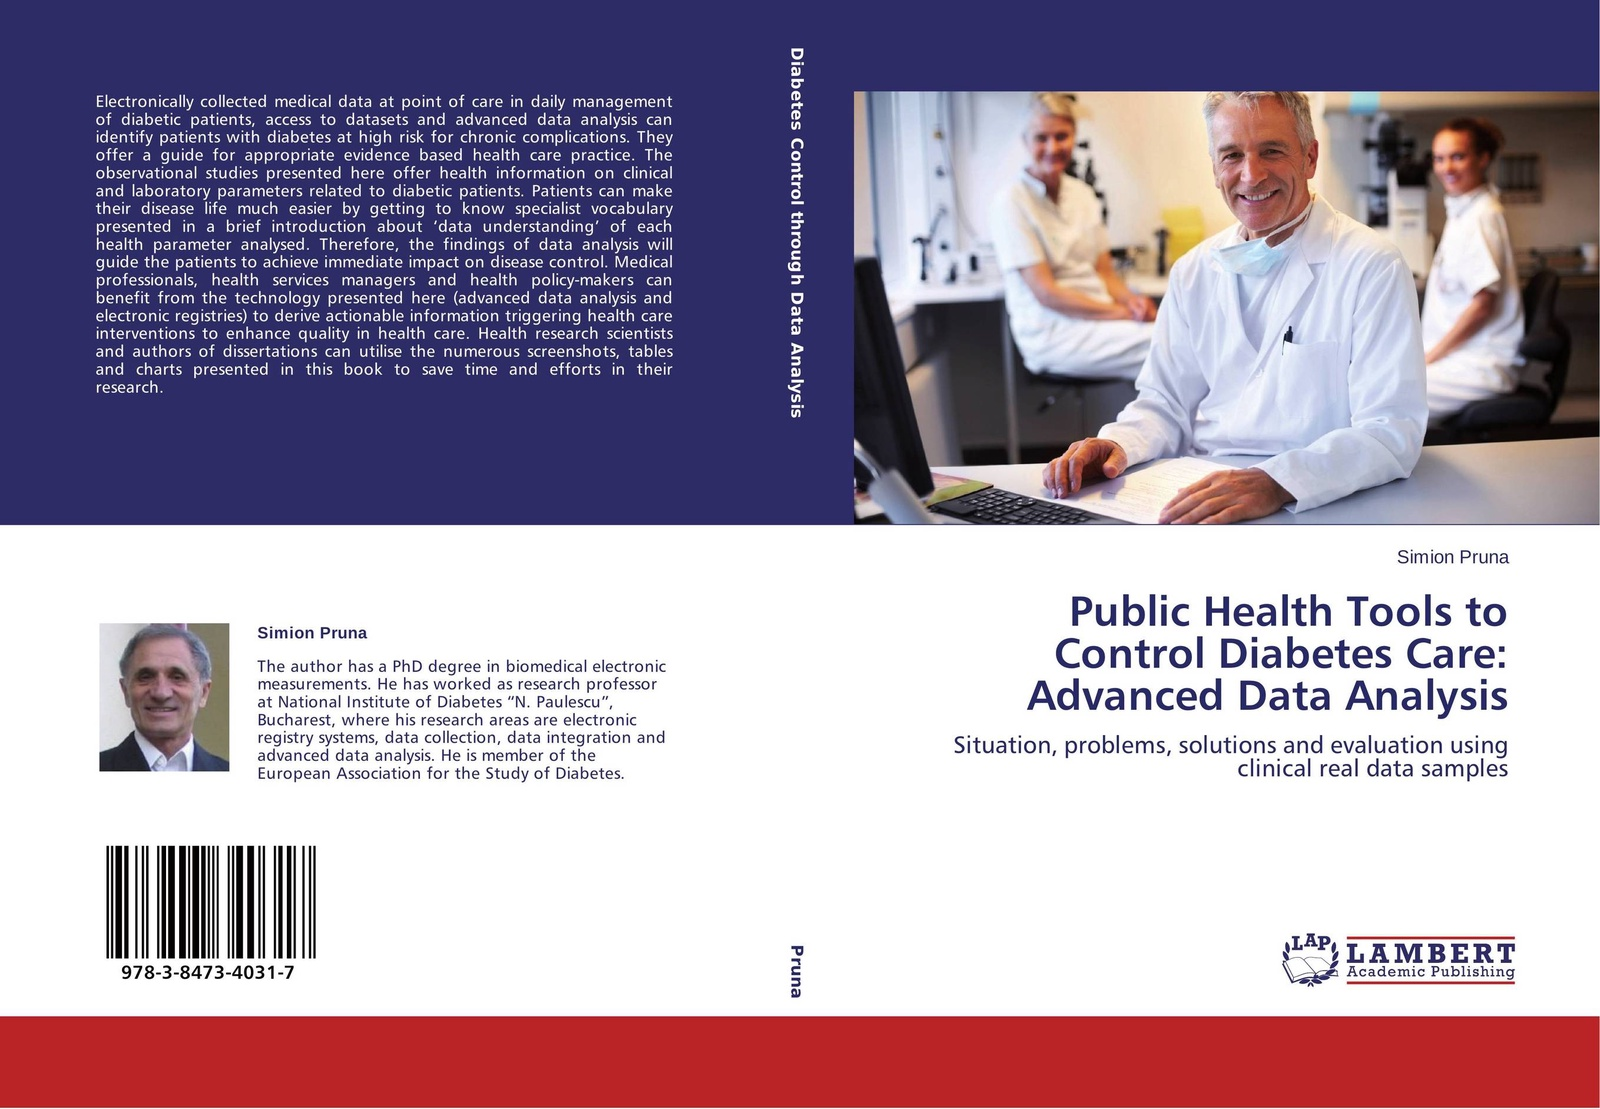 Simion Pruna Public Health Tools to Control Diabetes Care: Advanced Data Analysis electronic health records and medical big data